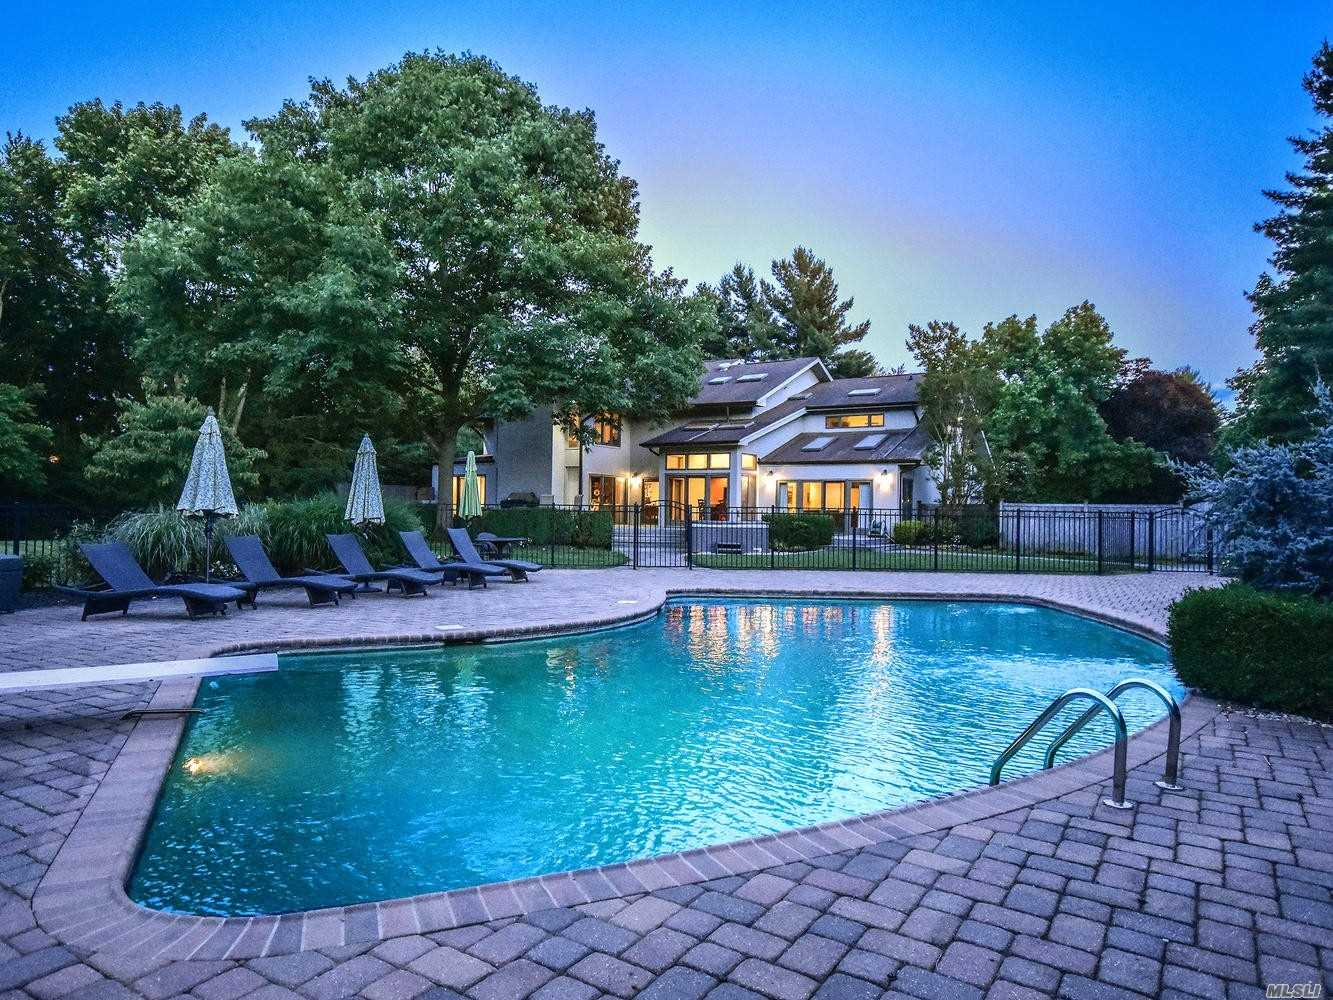 This Home Is Perfectly Located 20 Miles From Nyc And Jfk/Laguardia Airports And Close To The Finest Shopping And Dining On Long Island. Tasteful Finishes Throughout Including Elegant Fabric Wall Coverings And Custom Window Treatments. Entertaining Is Easy In The Generous Size Rooms And Spacious Deck Overlooking The Property And Pool-House Generator.